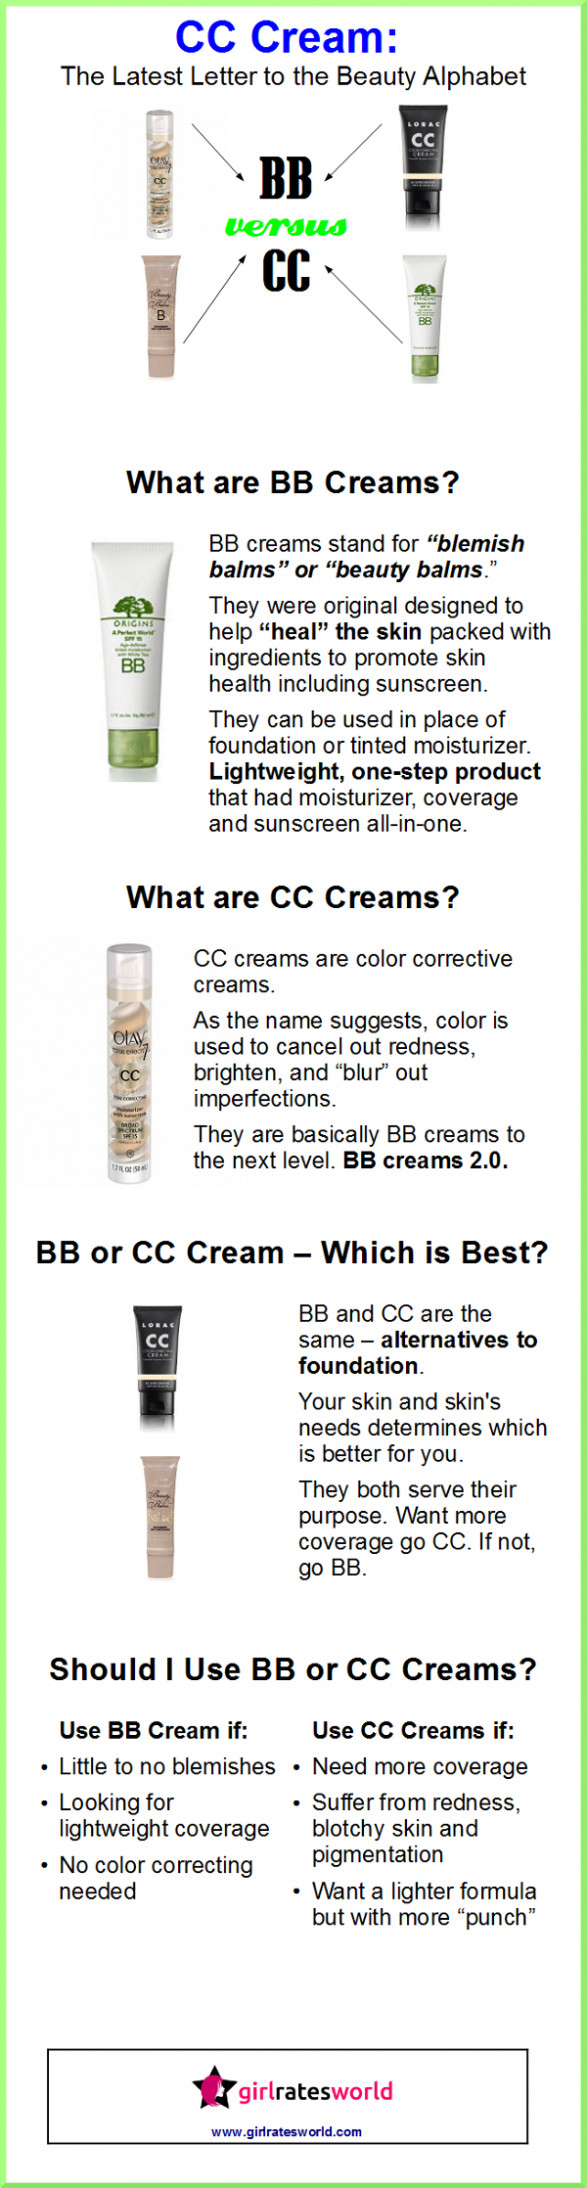 CC Cream versus BB Cream - Which Is Better?